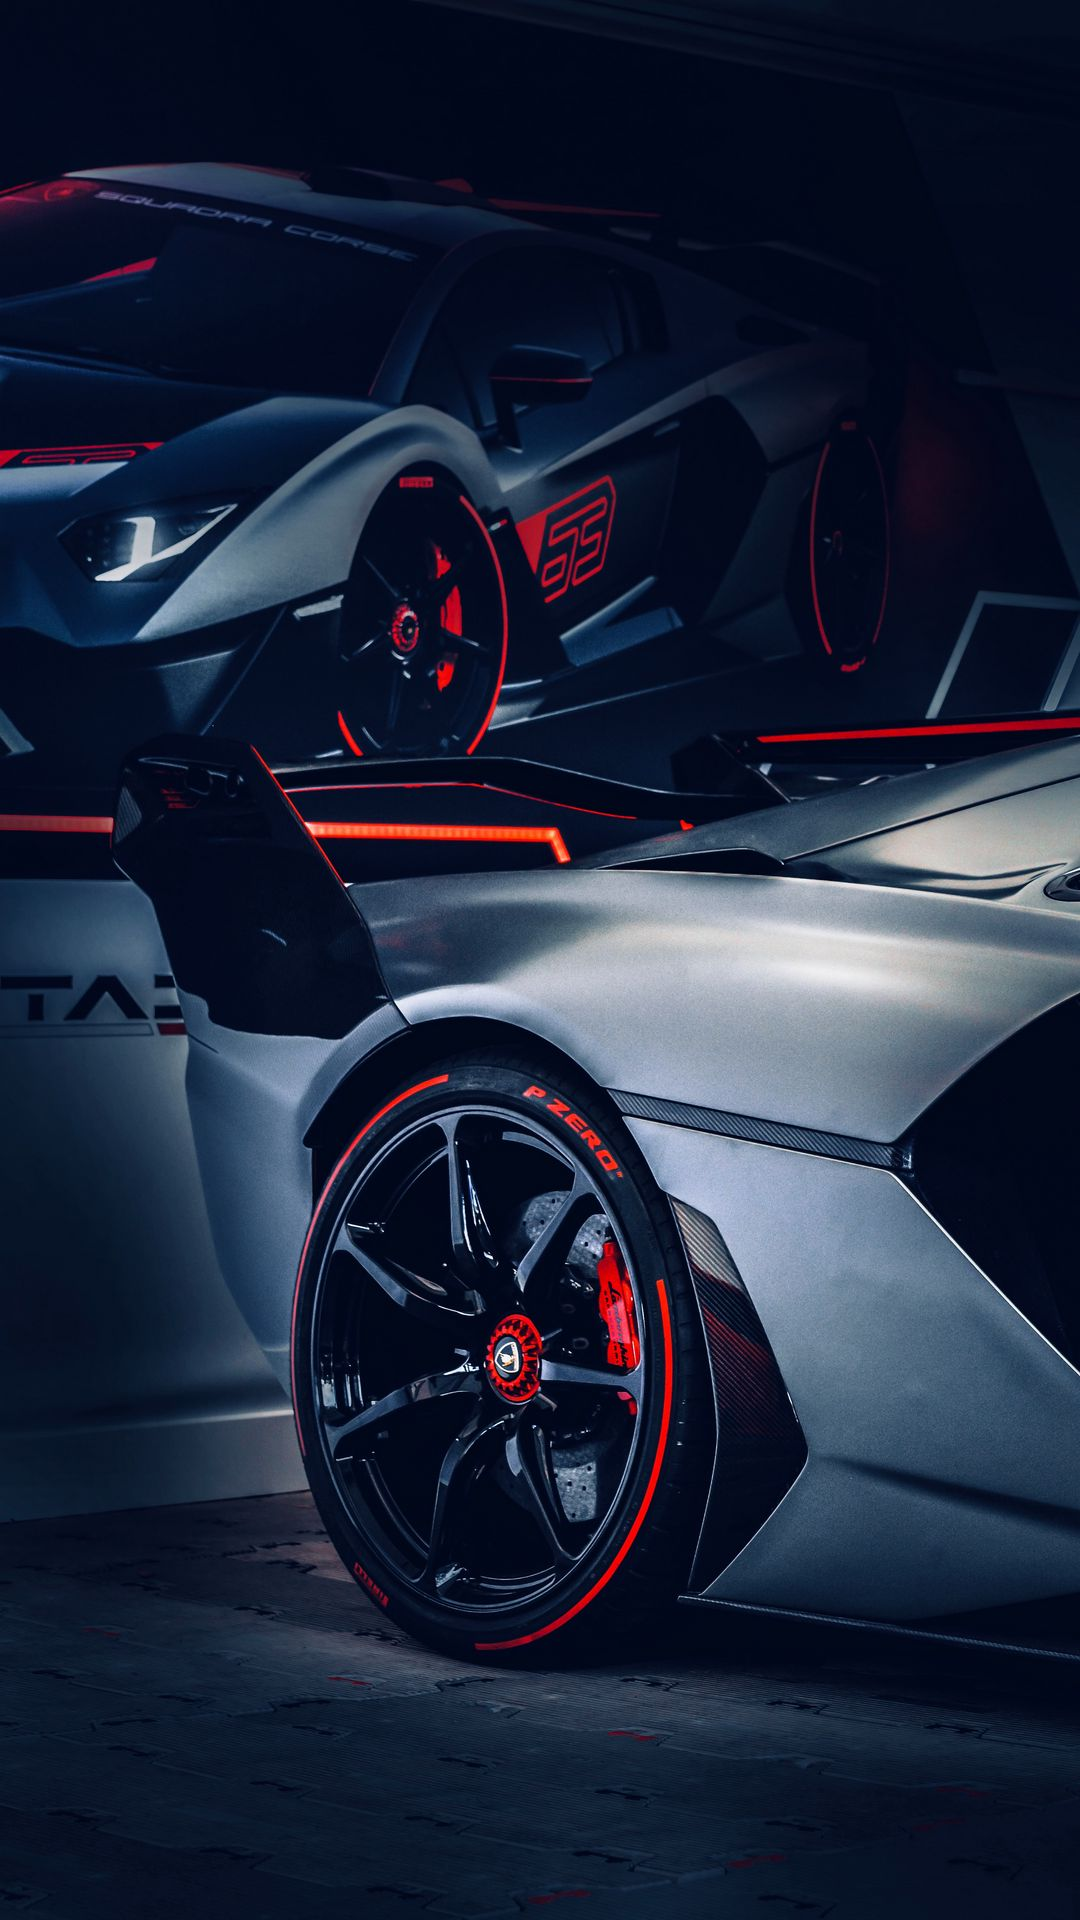 JDM Tunning 4K Ultra HD Wallpapers Download for Mobile